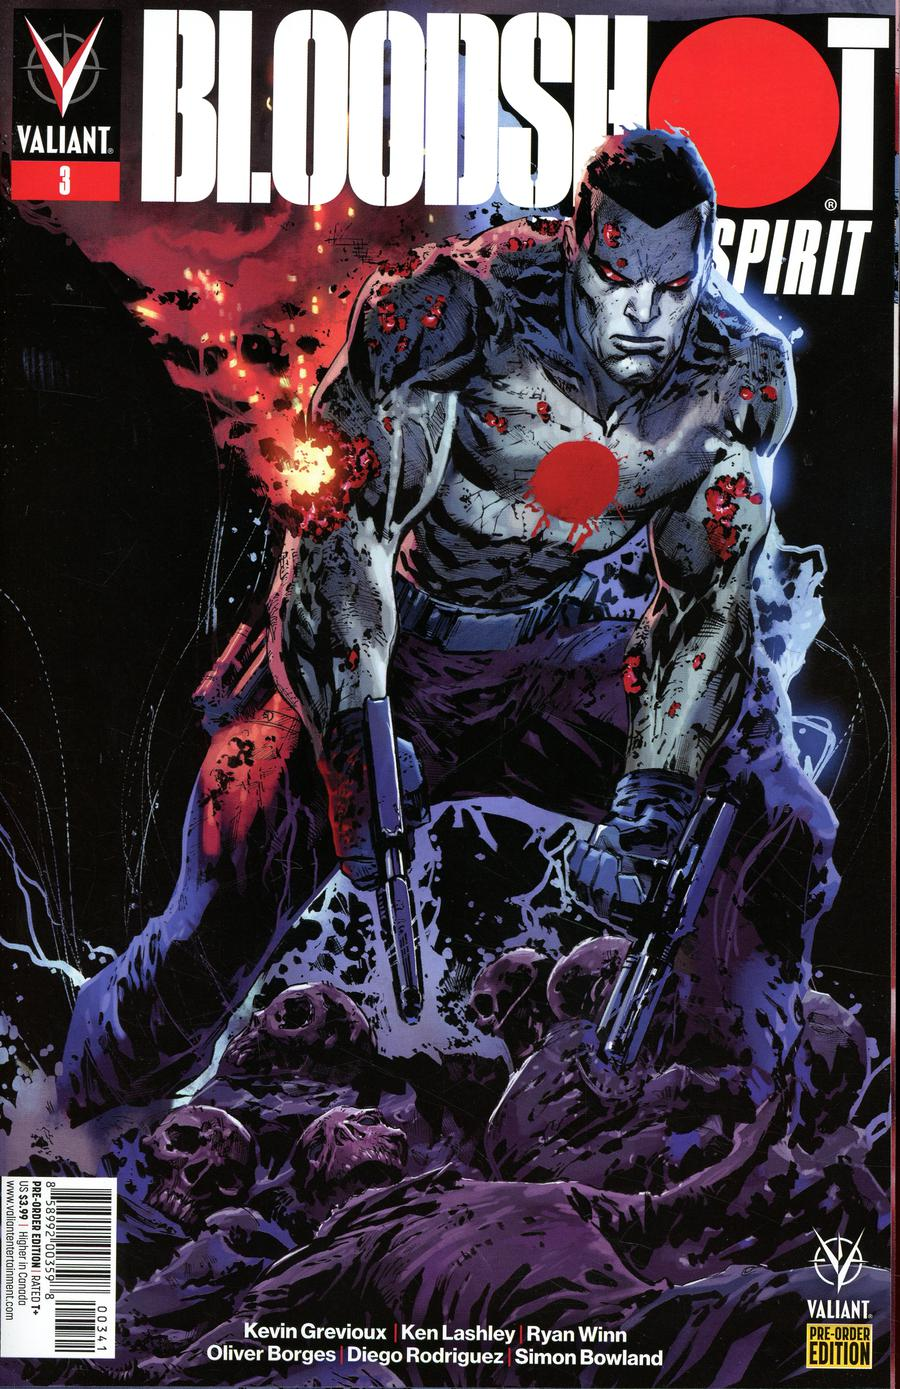 Bloodshot Rising Spirit #3 Cover C Variant Ken Lashley Cover